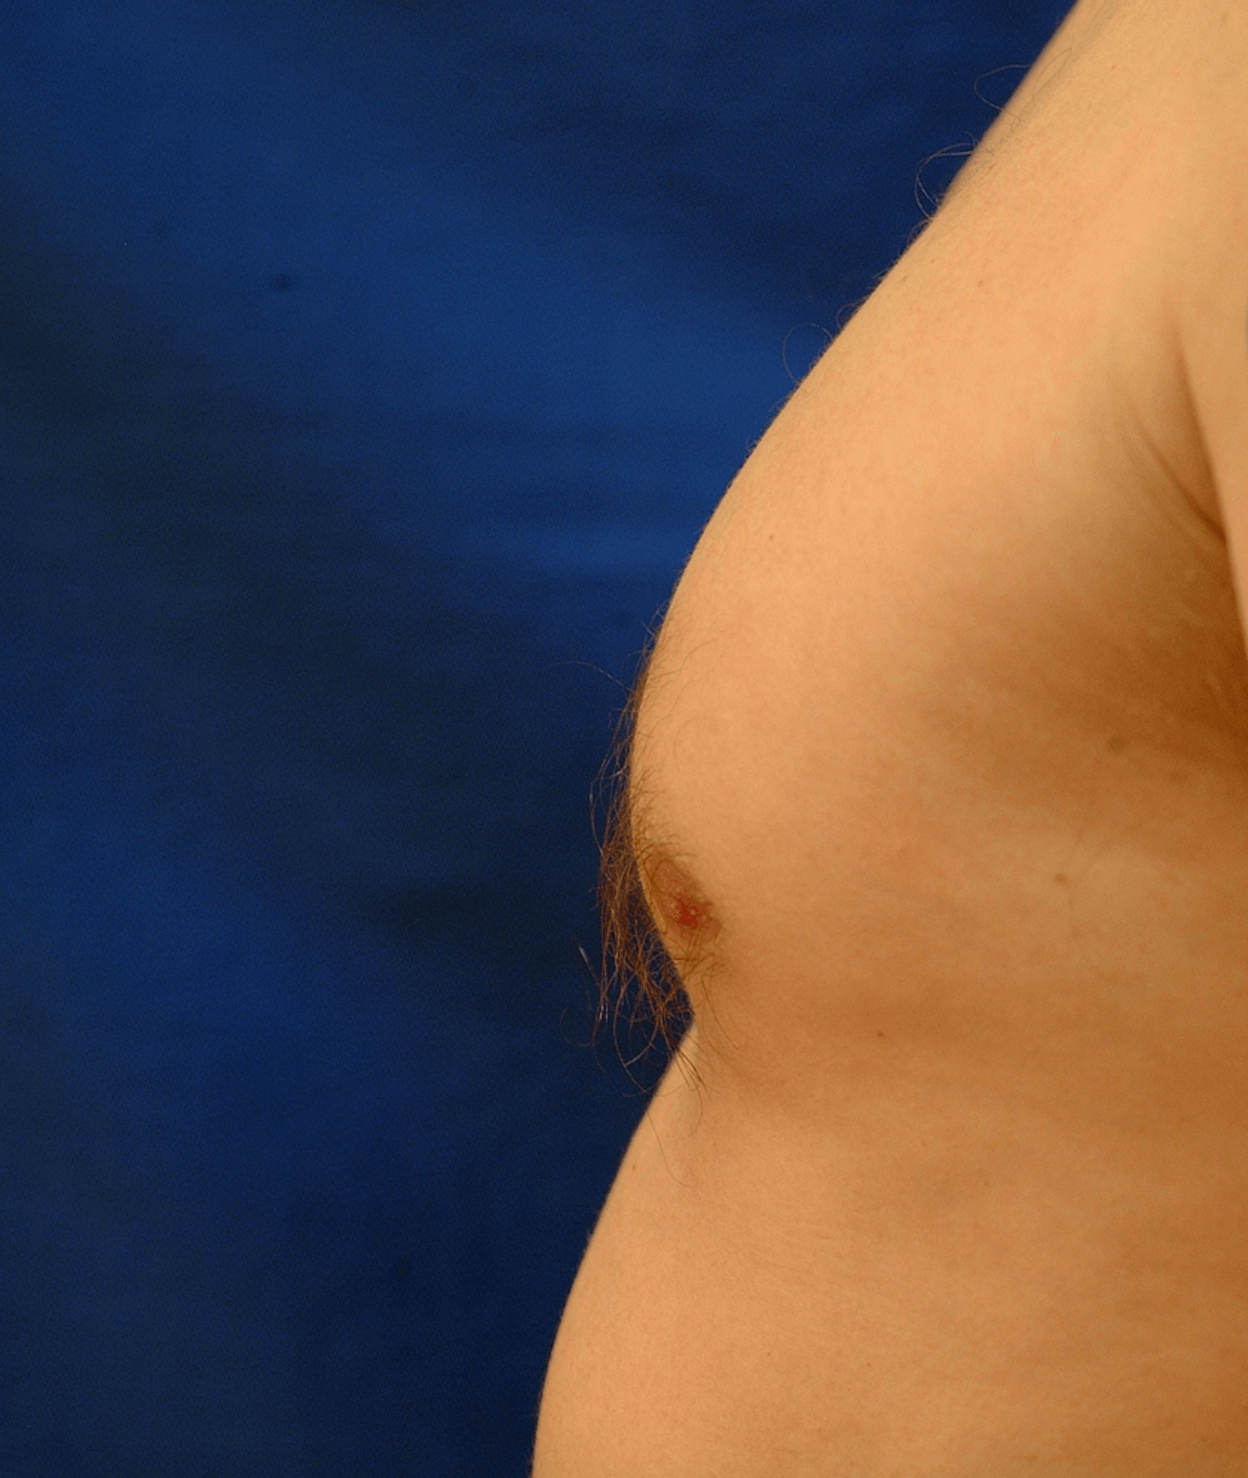 Newport Beach Gynecomastia Side View Bent Before